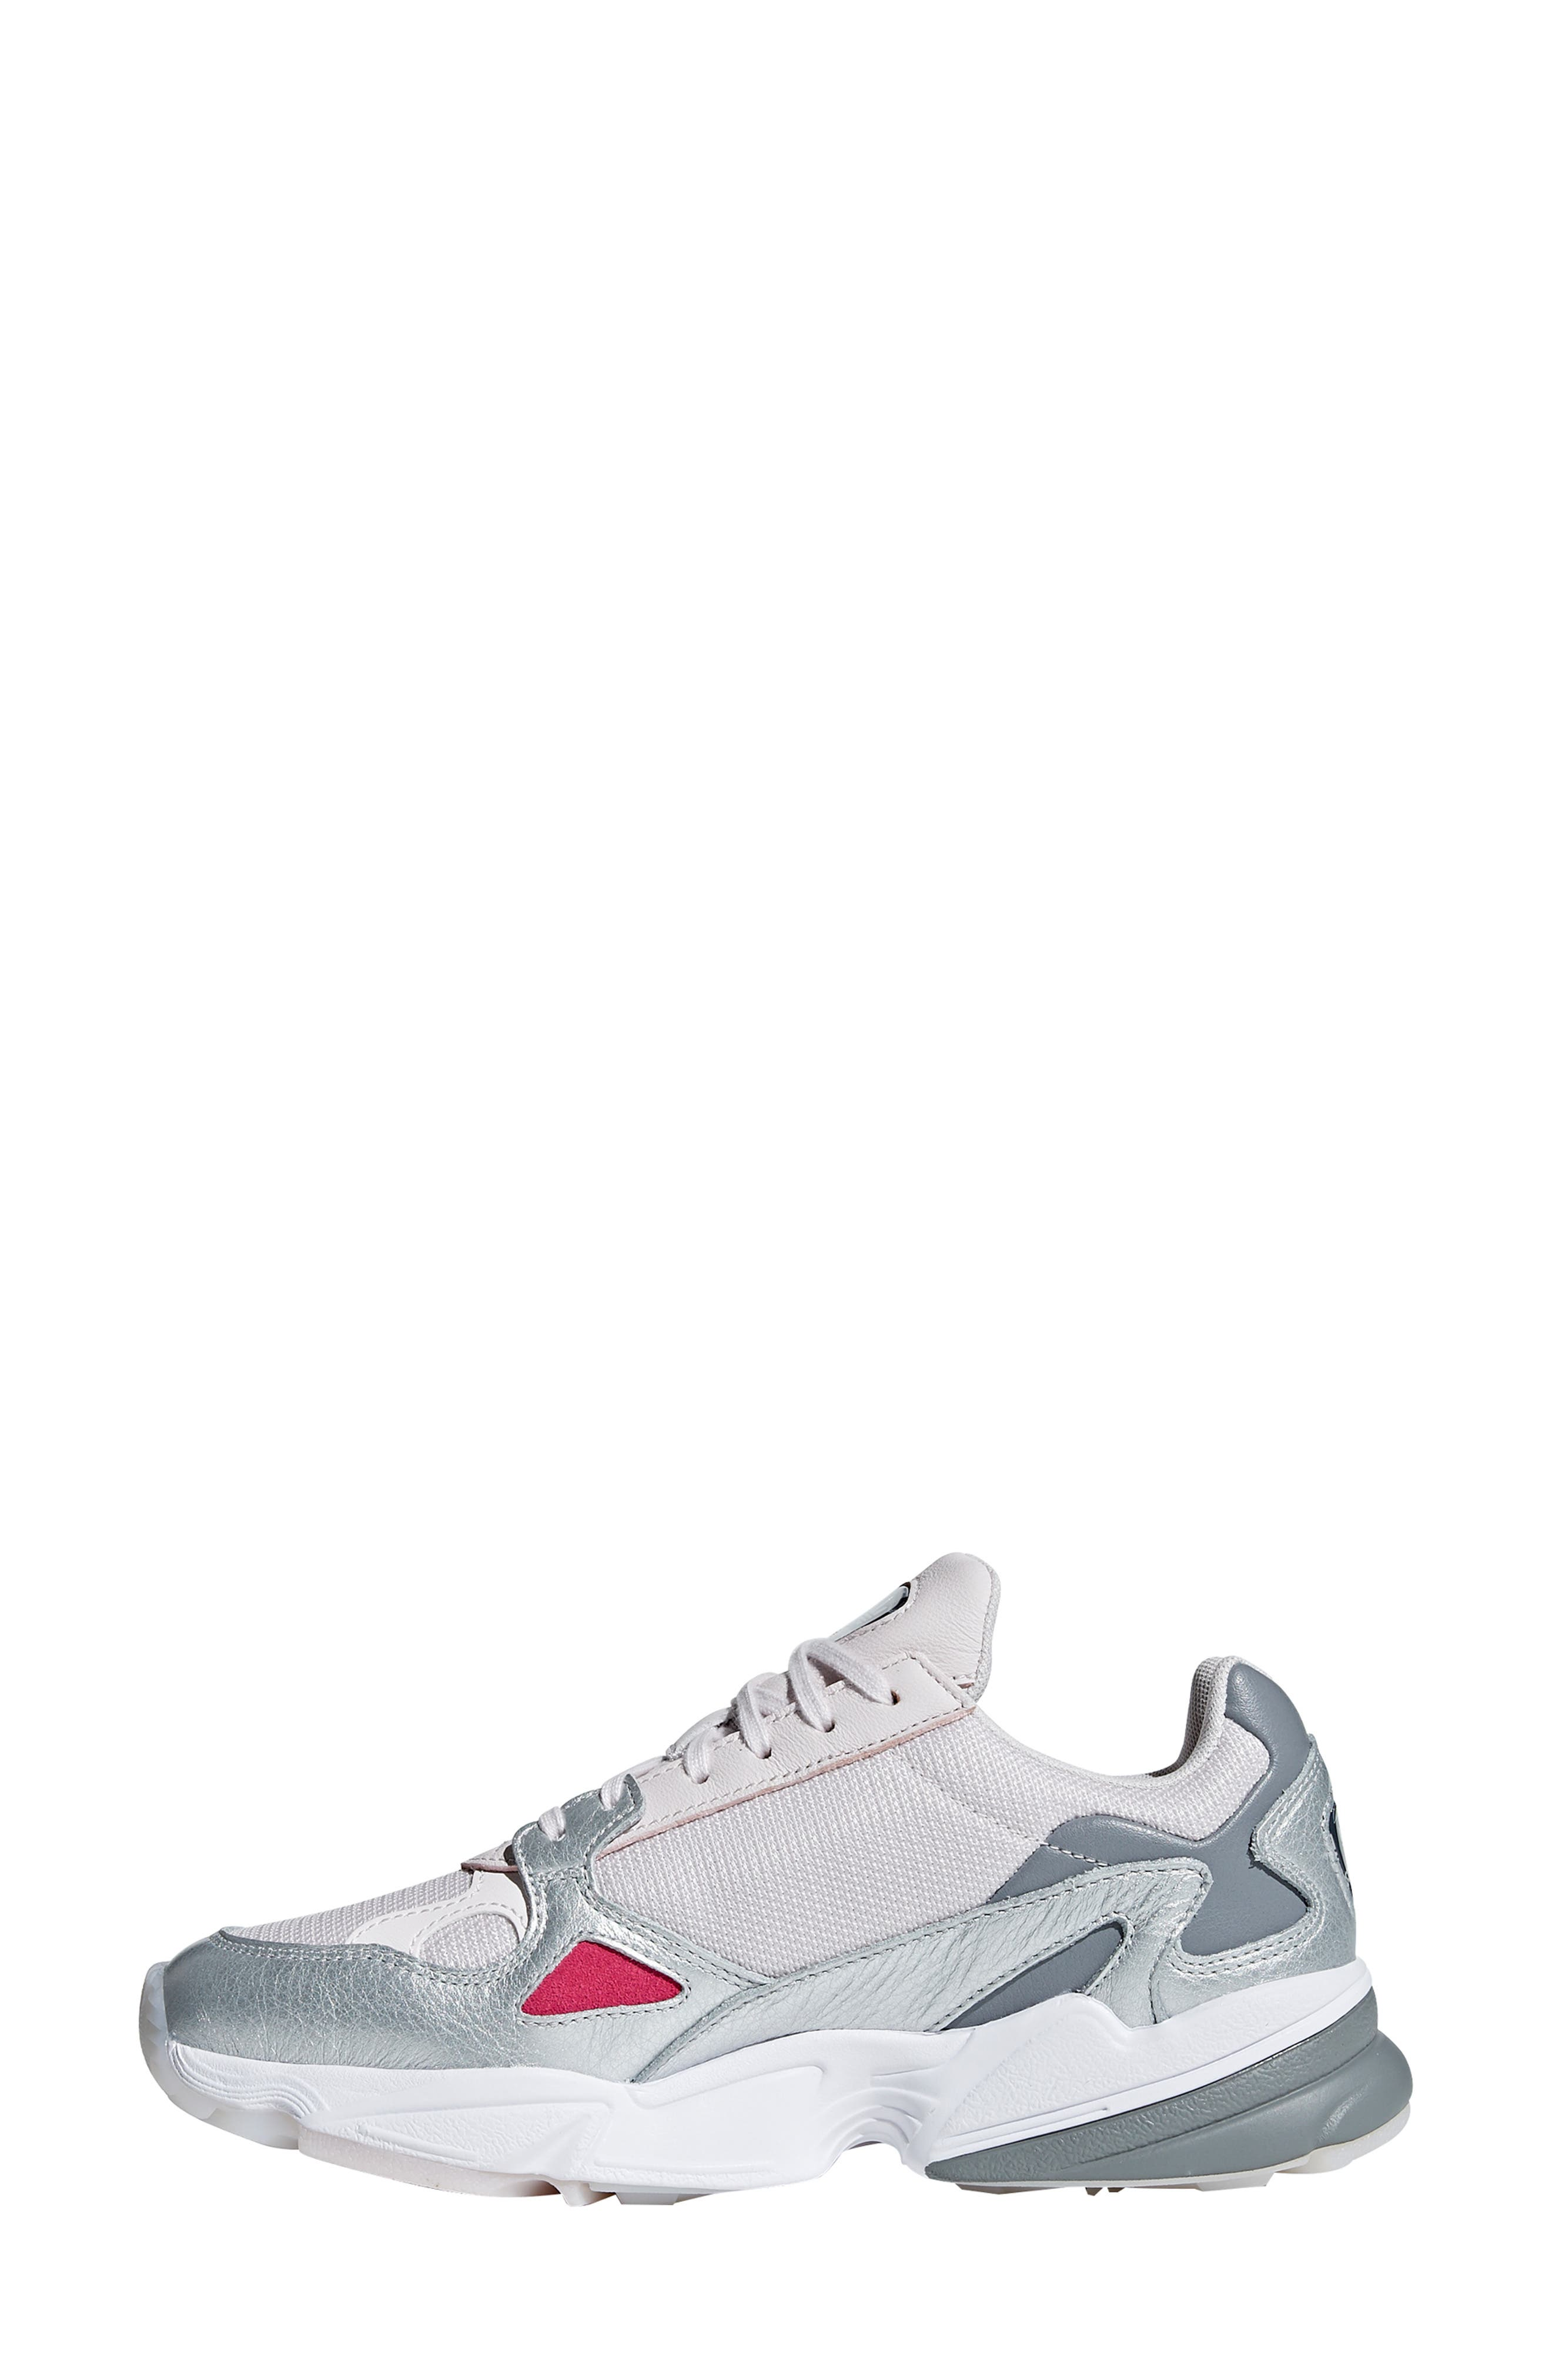 Falcon Sneaker,                             Alternate thumbnail 6, color,                             ORCHID TINT/ SILVER